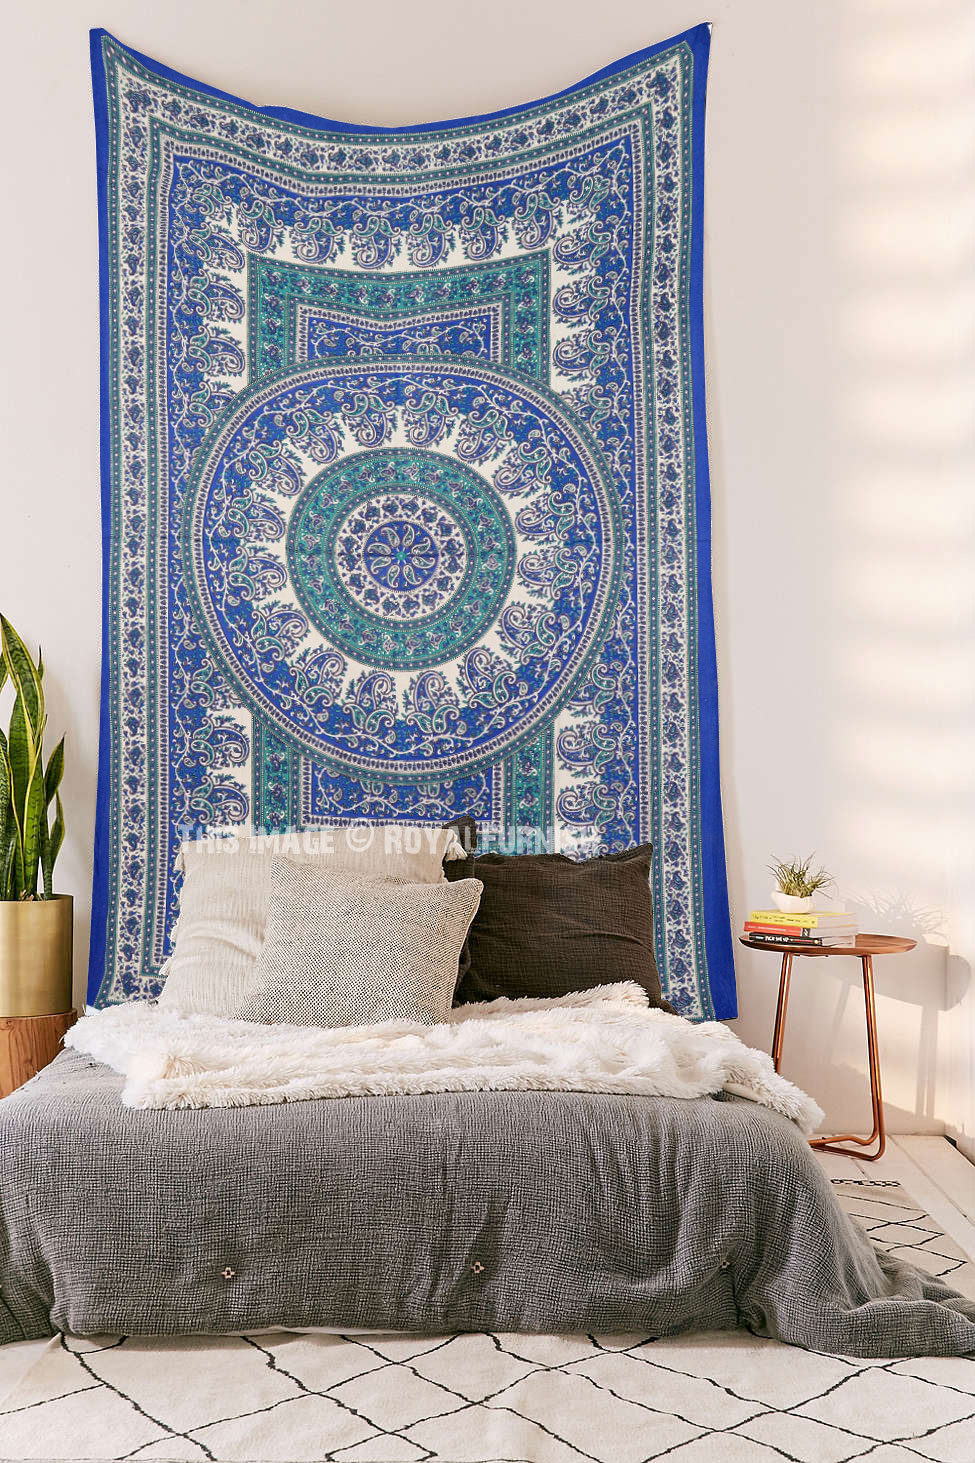 Twin Size Blue Indian Handloom Mandala Tapestry Wall